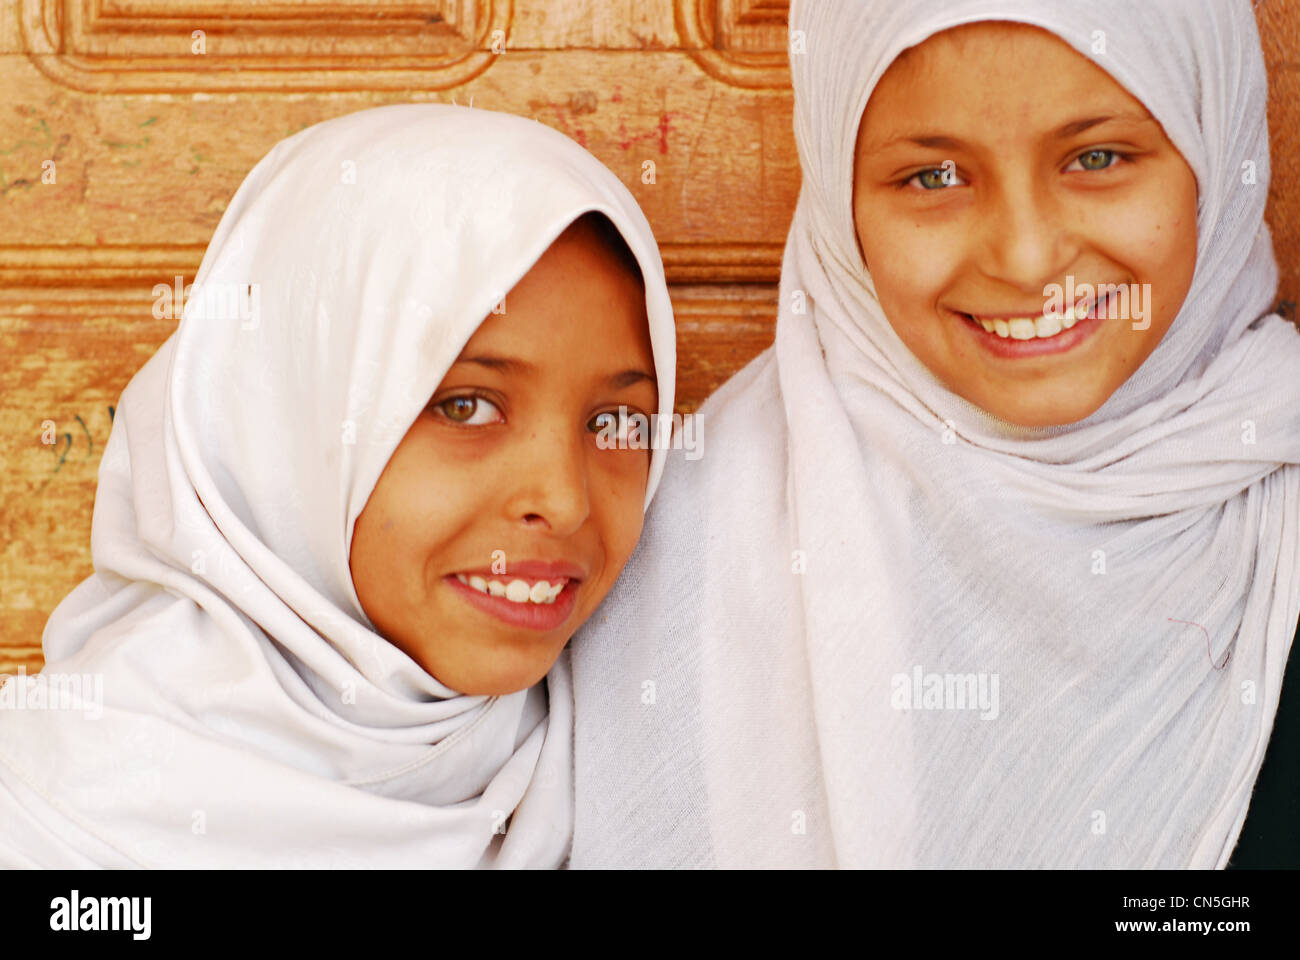 Yemen, Sanaa Governorate, Sanhan, close-up portrait of girls wearing headscarves standing together by door and smiling - Stock Image